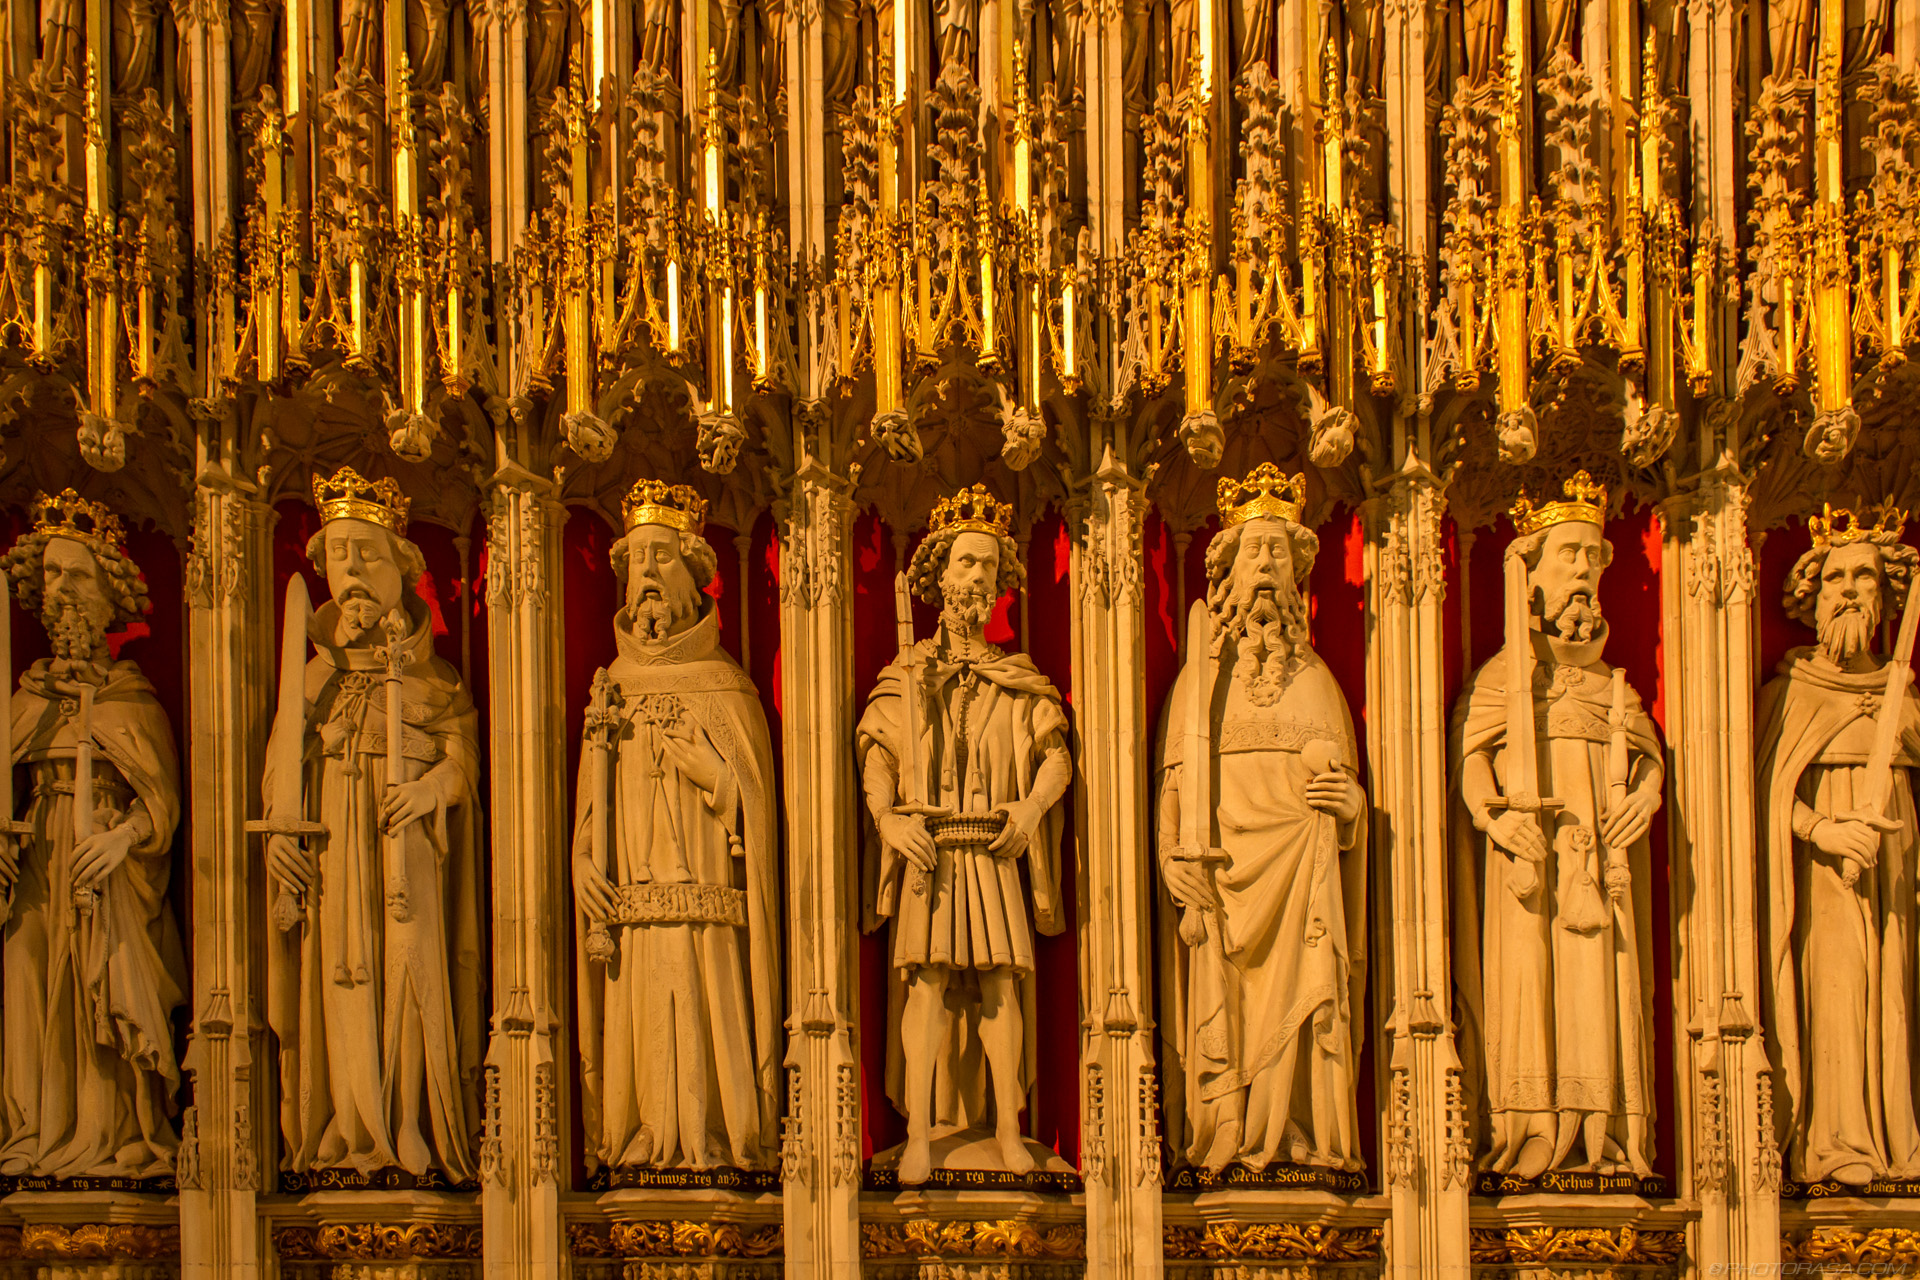 http://photorasa.com/places/yorkminster-cathedral/attachment/kings-screen-decorative-stone-figures/